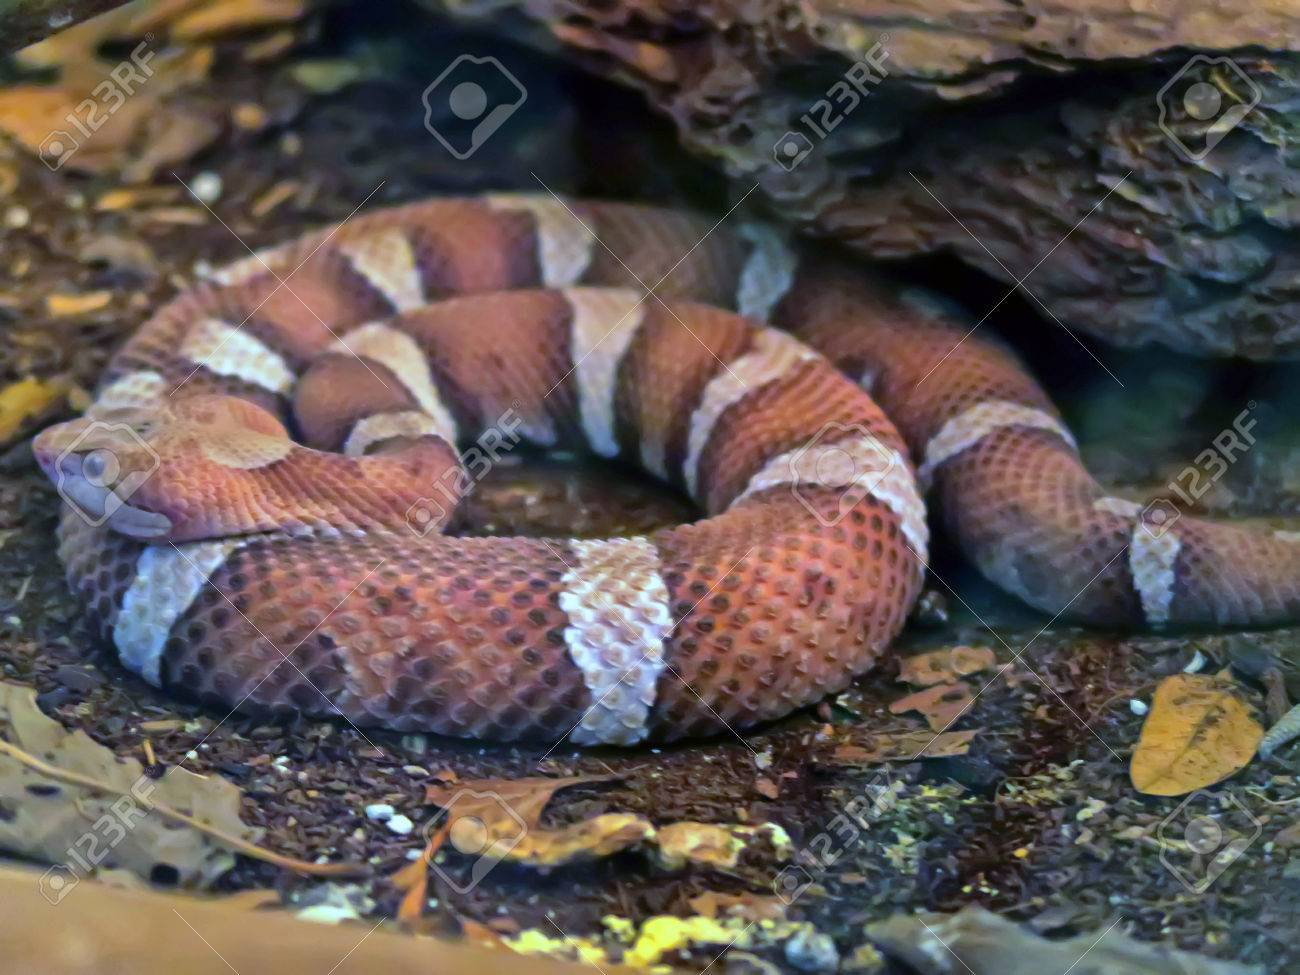 view of a agkistrodon contortrix a venomous species of snake